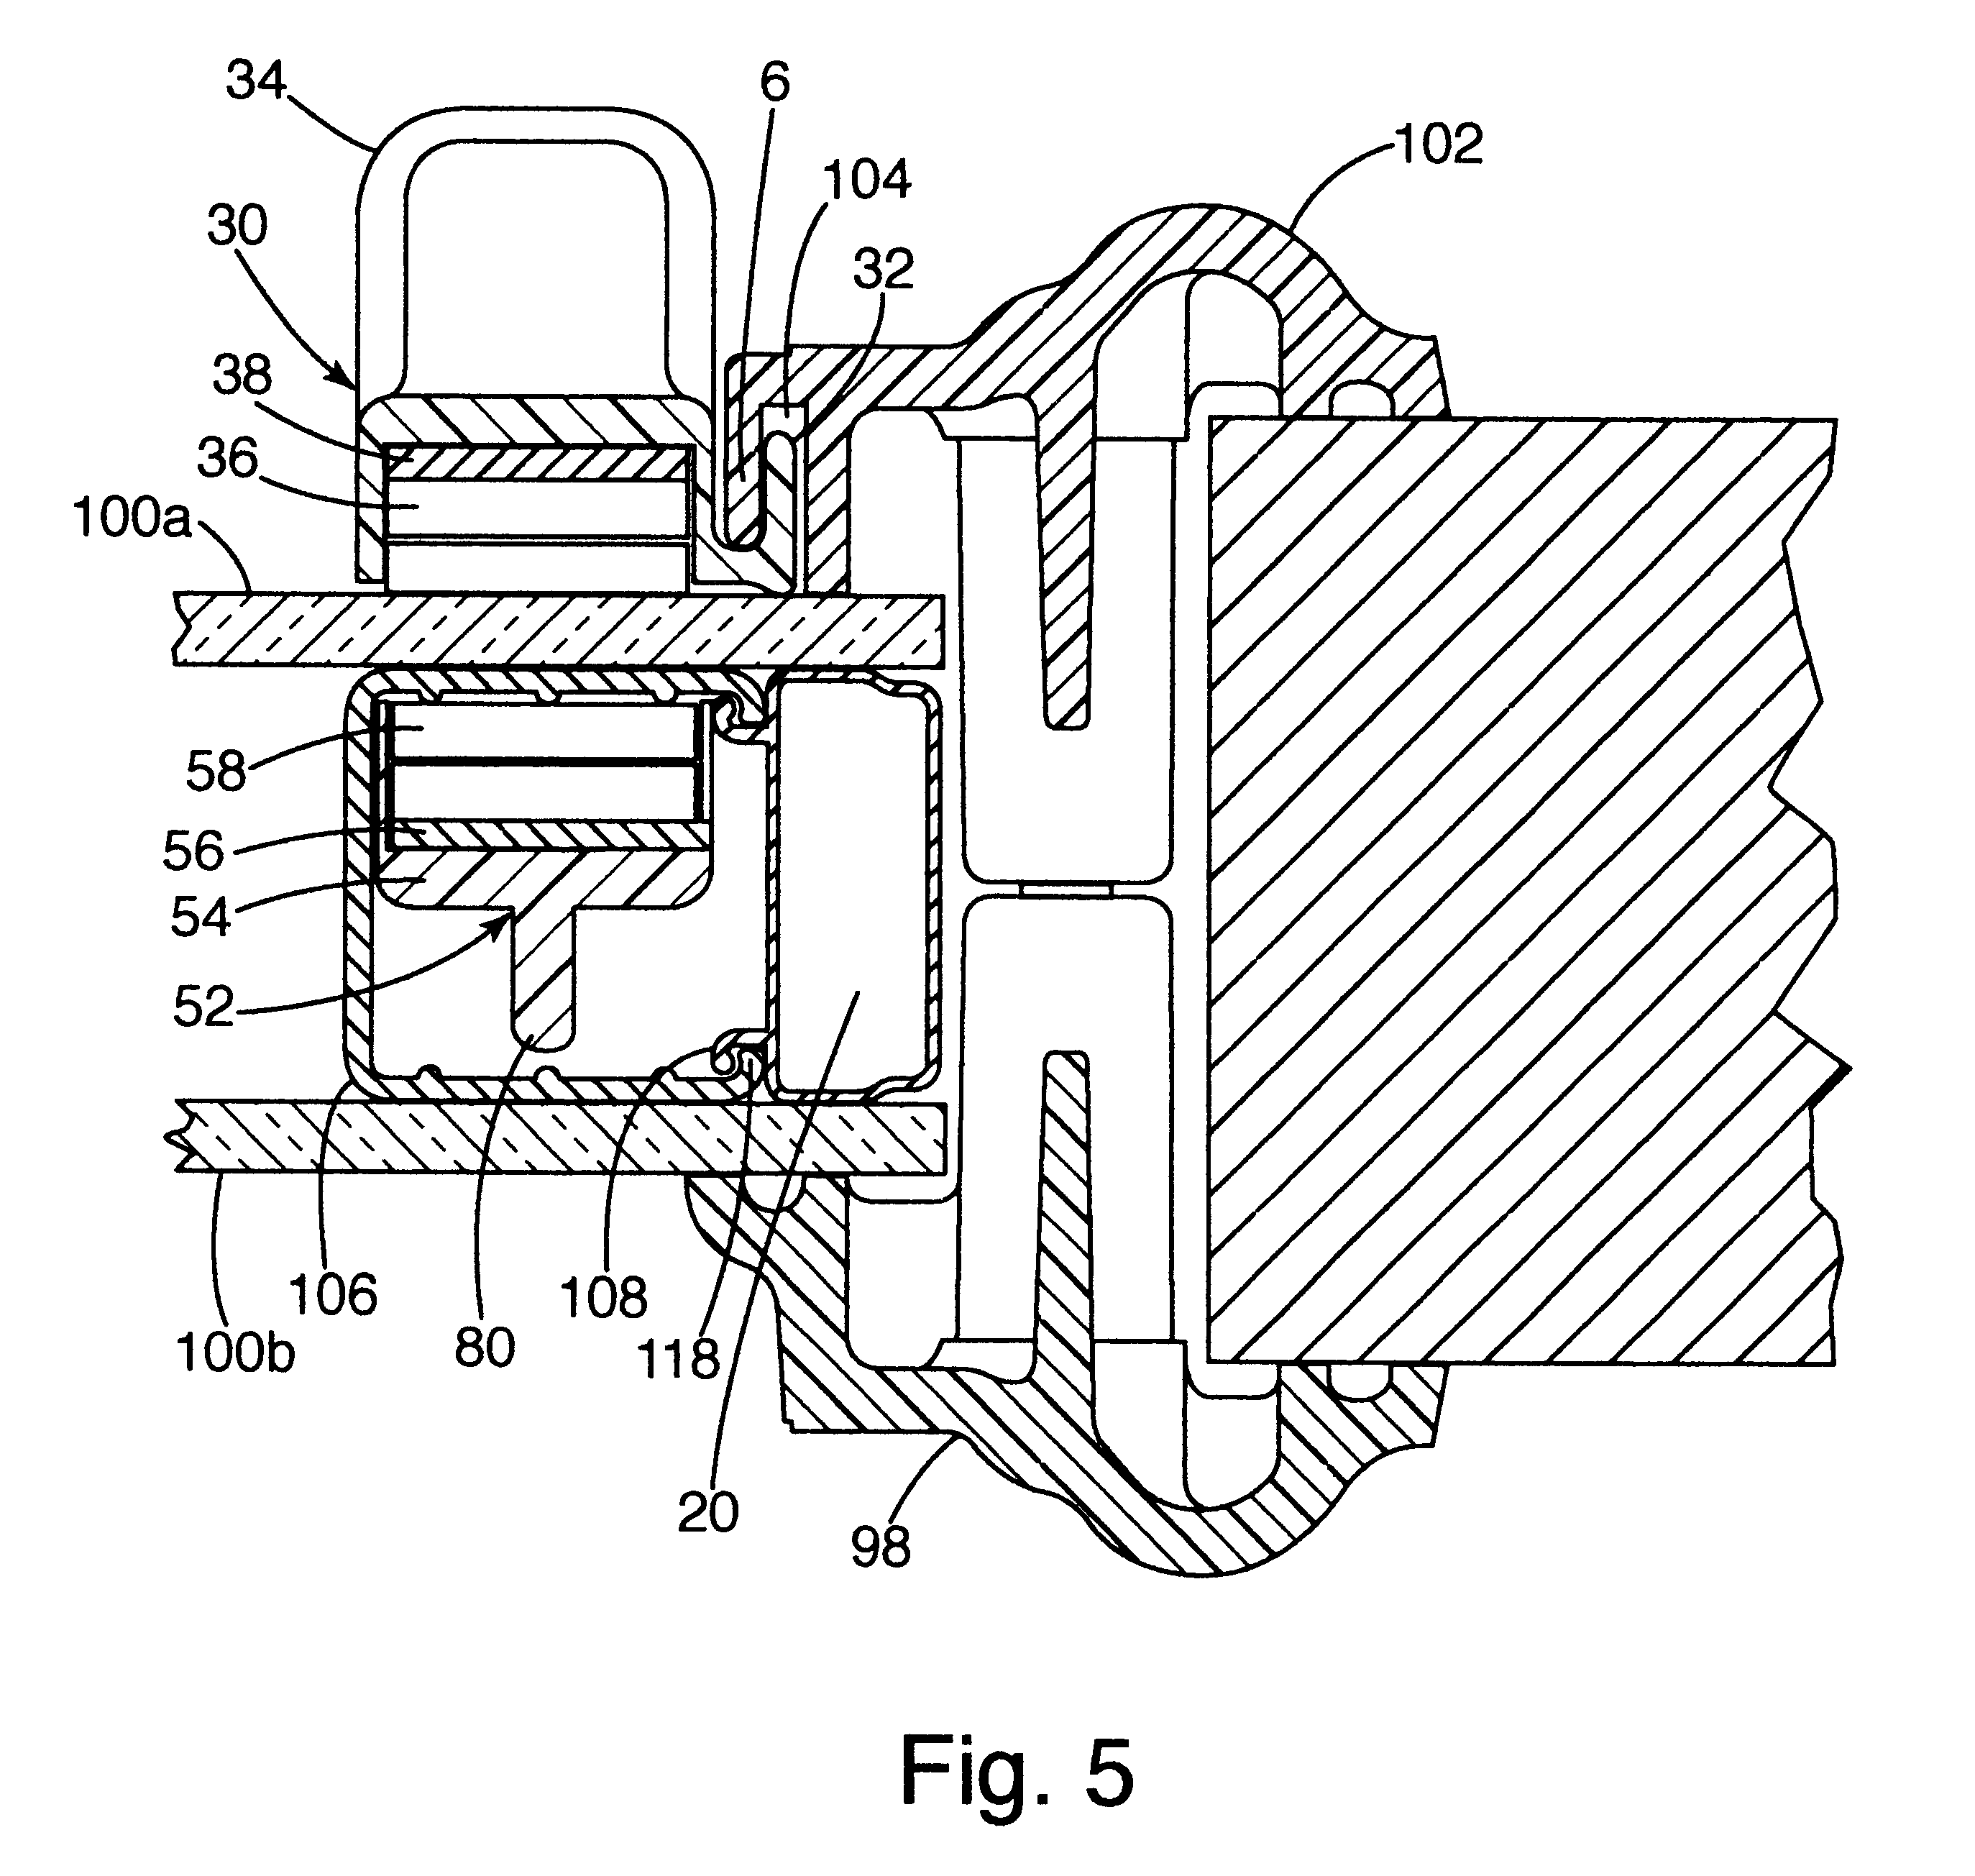 Insulated Glass Assembly : Patent us insulated glass blind assembly google